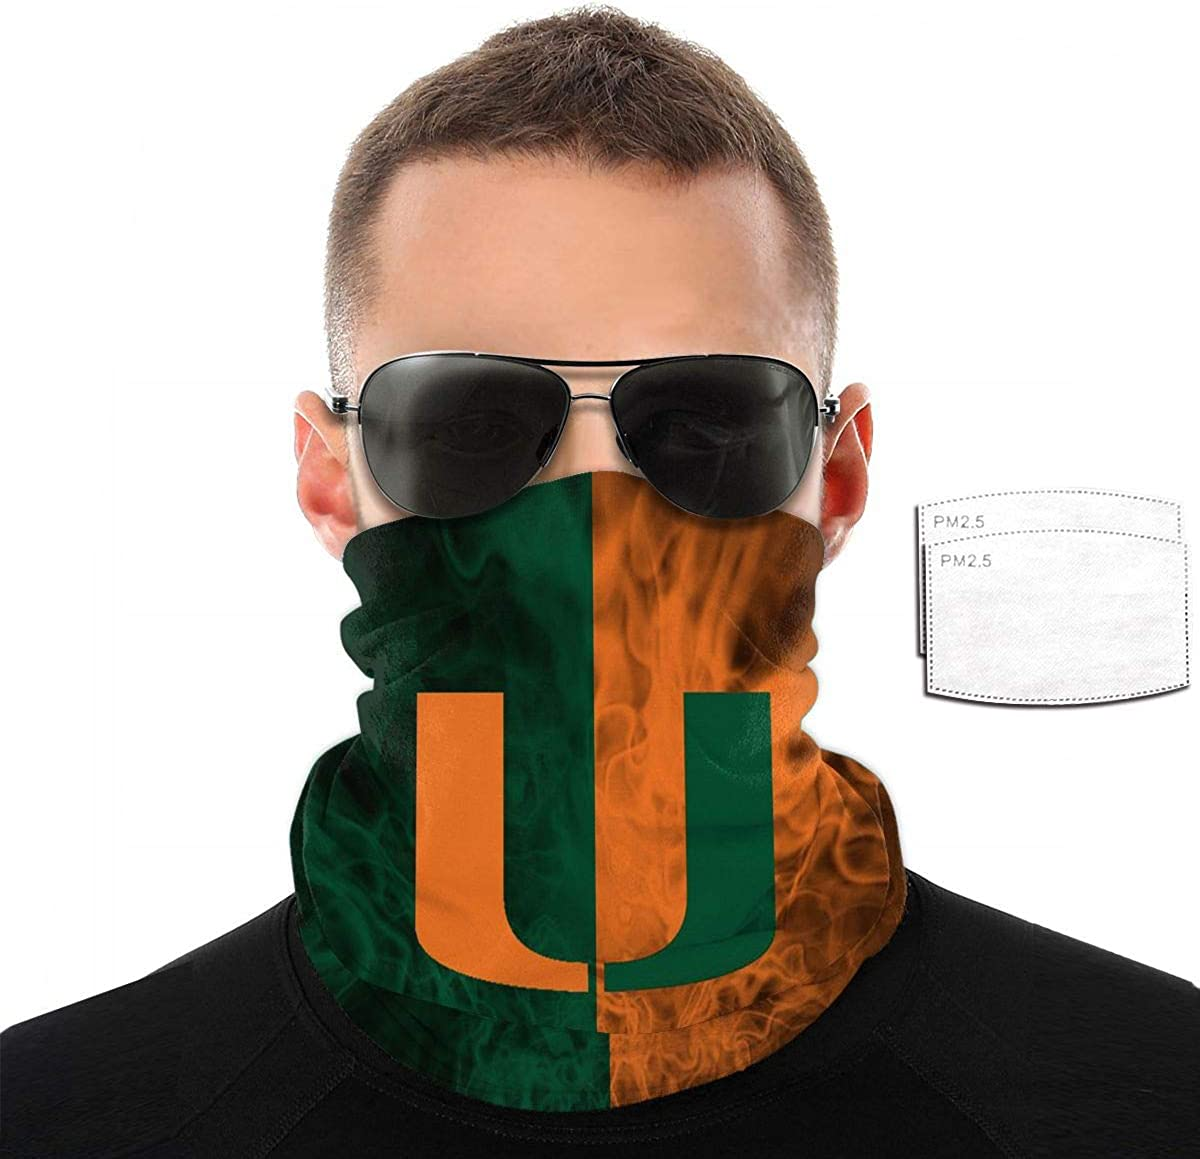 NCAA Face Cover with Filter Face Cover Windproof Sports Mask Outdoor Balaclava